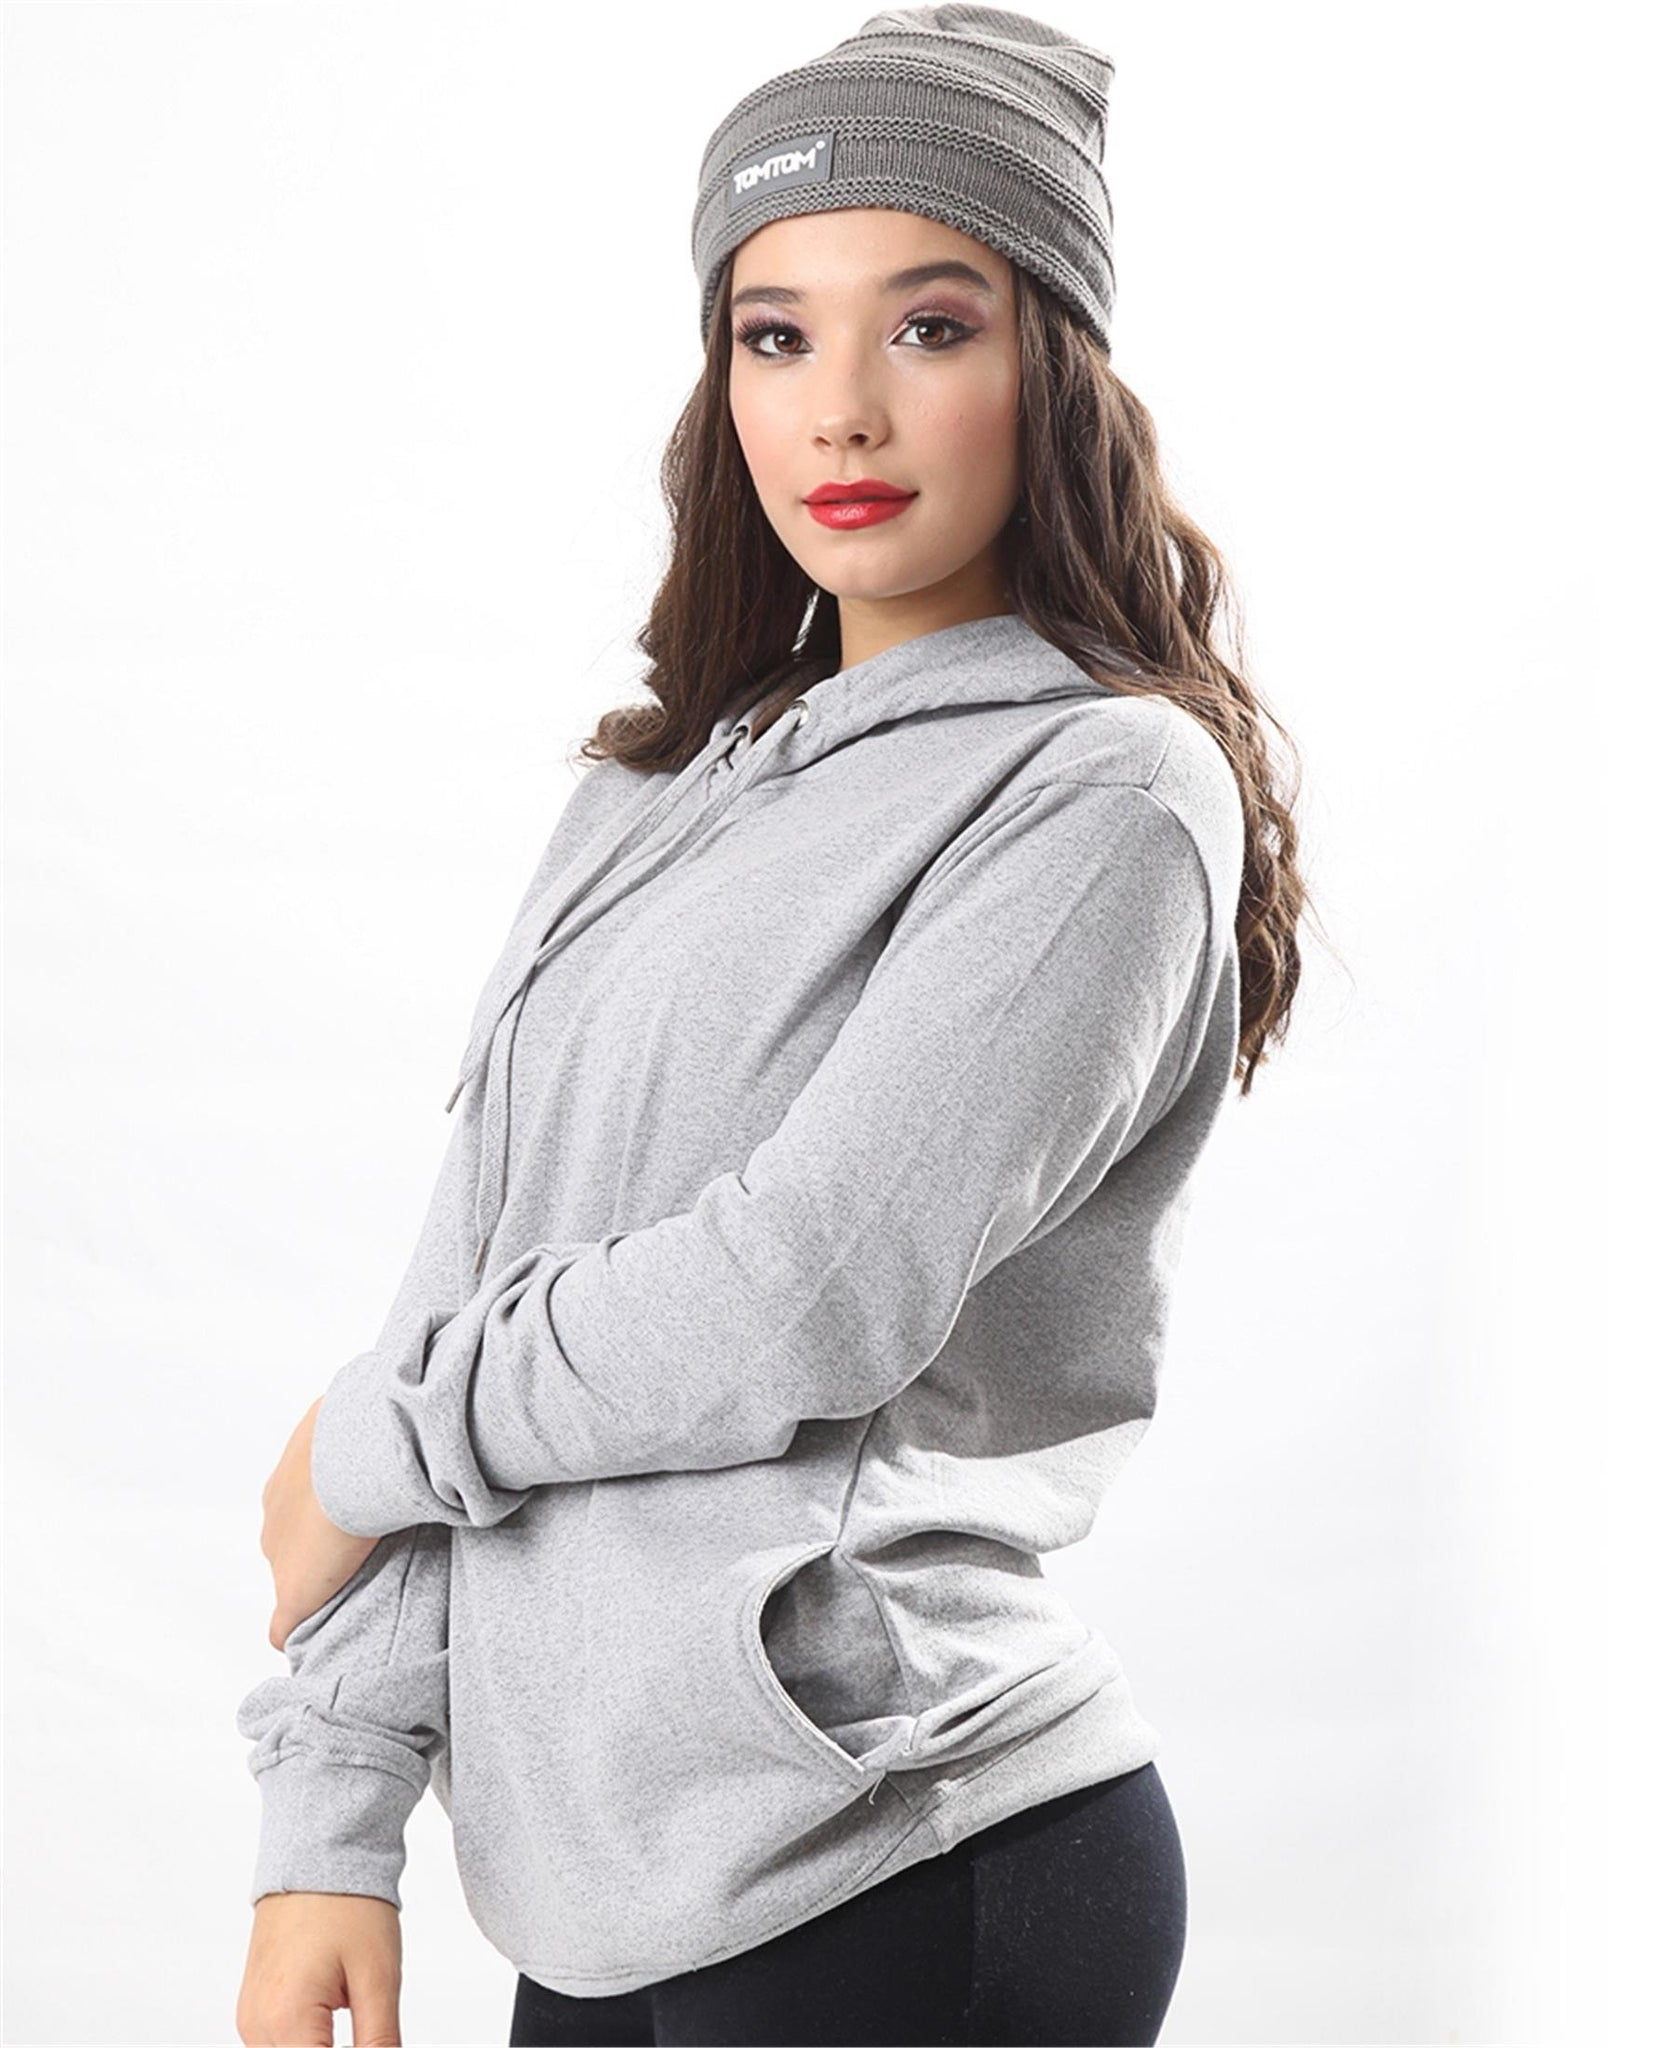 Unisex Hoody Jacket - Grey